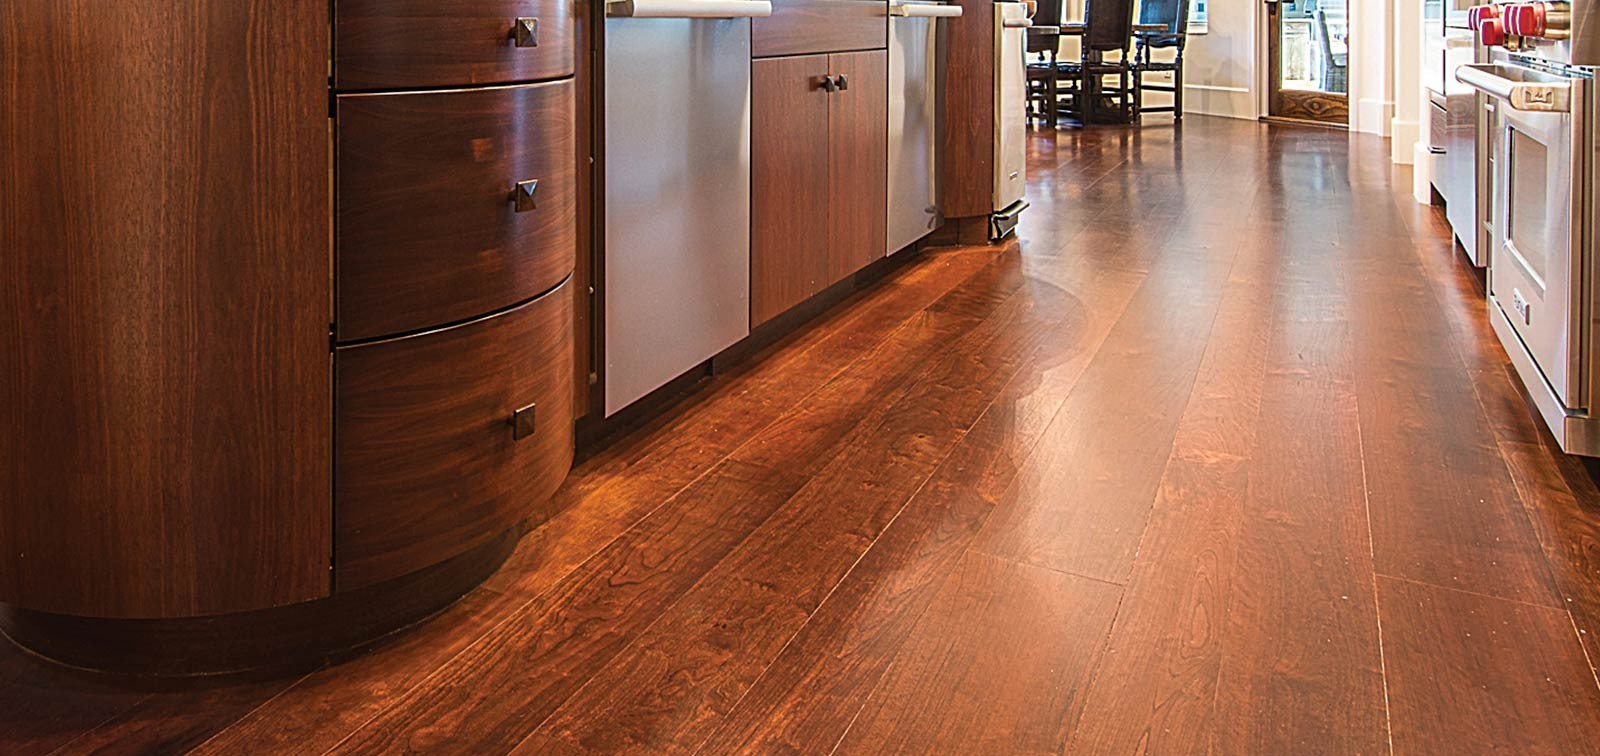 Maintaining Great Looking Hardwood Floors